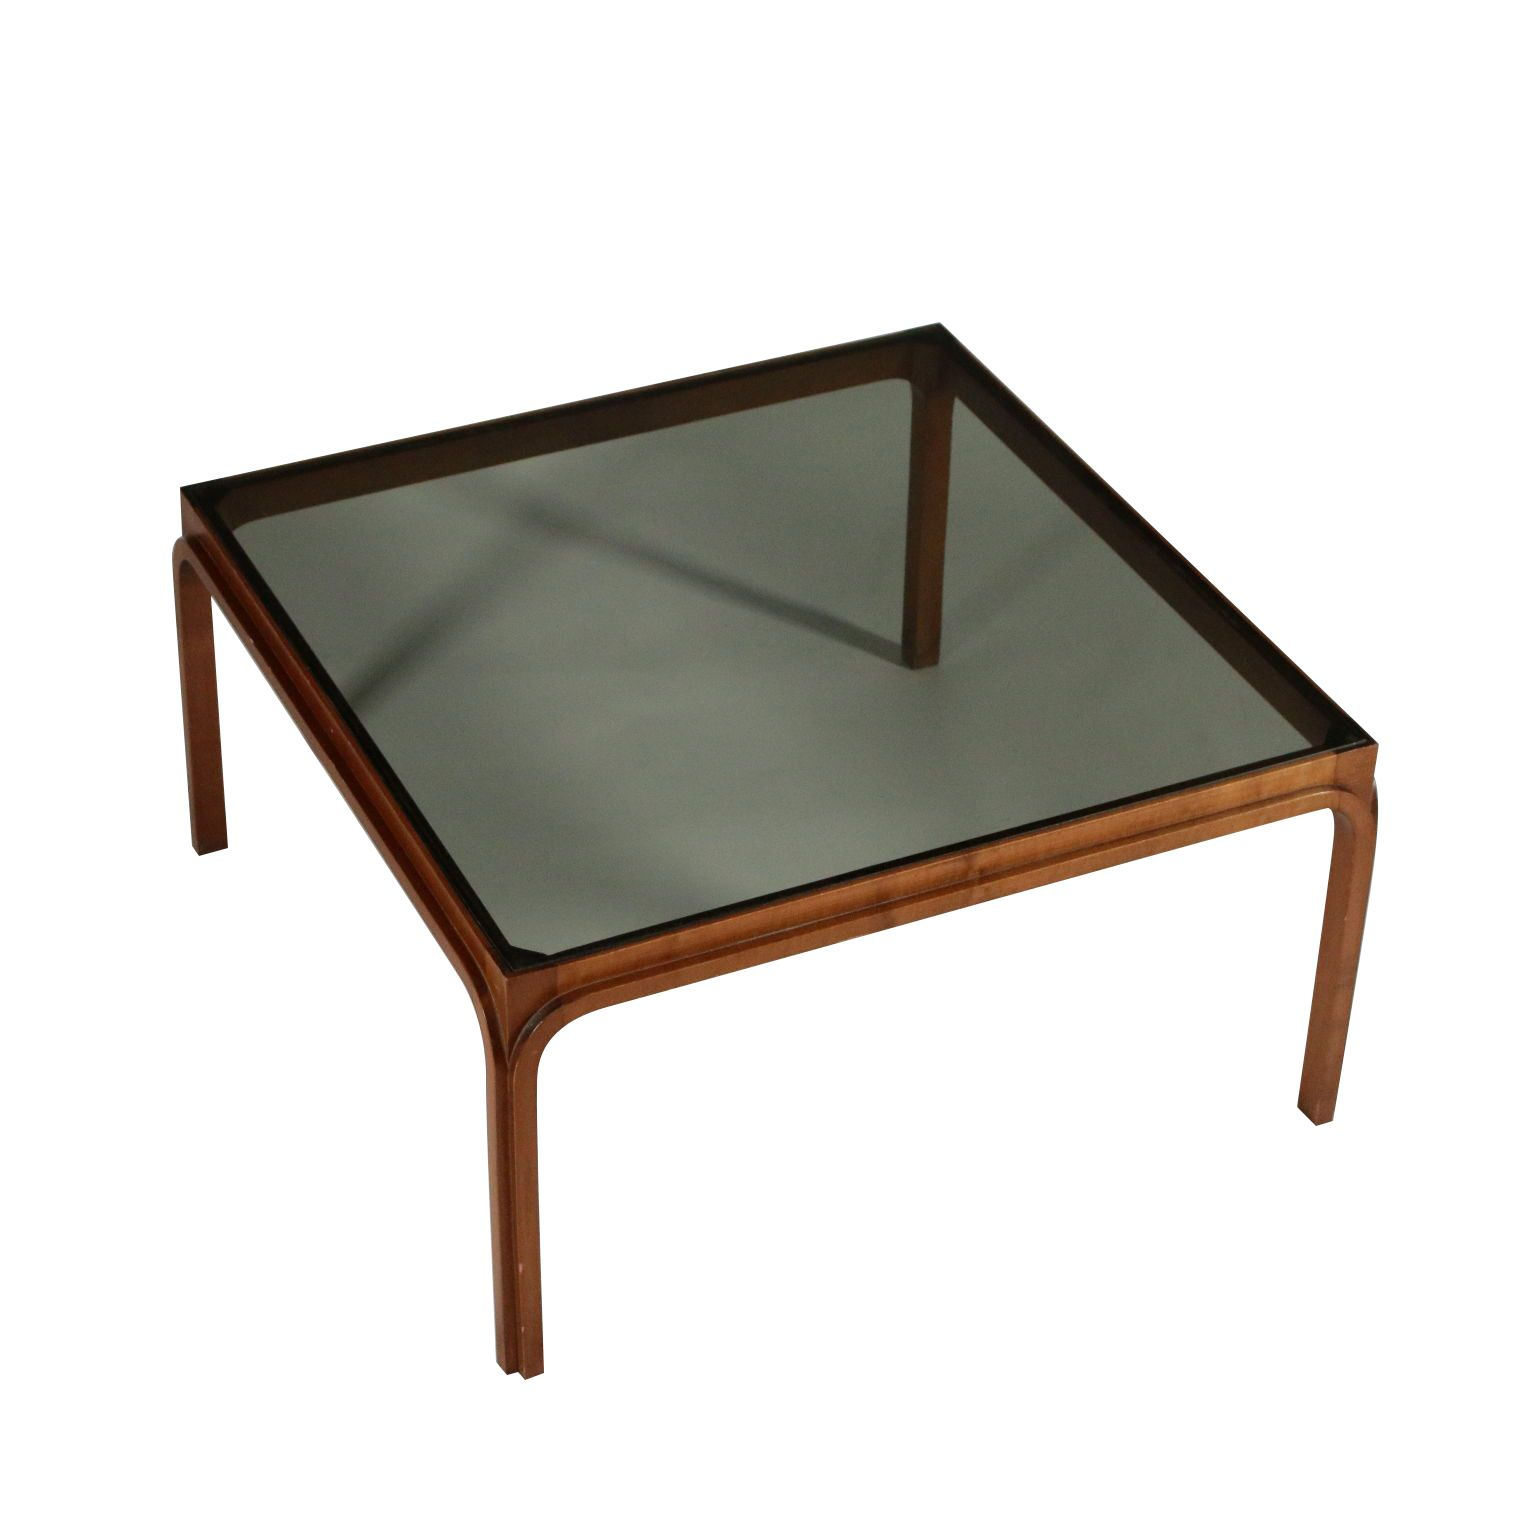 Coffee Table Beech Smoked Glass Vintage Italy 1960s 1970s Table Vintage Decoration Interieure Table Bois